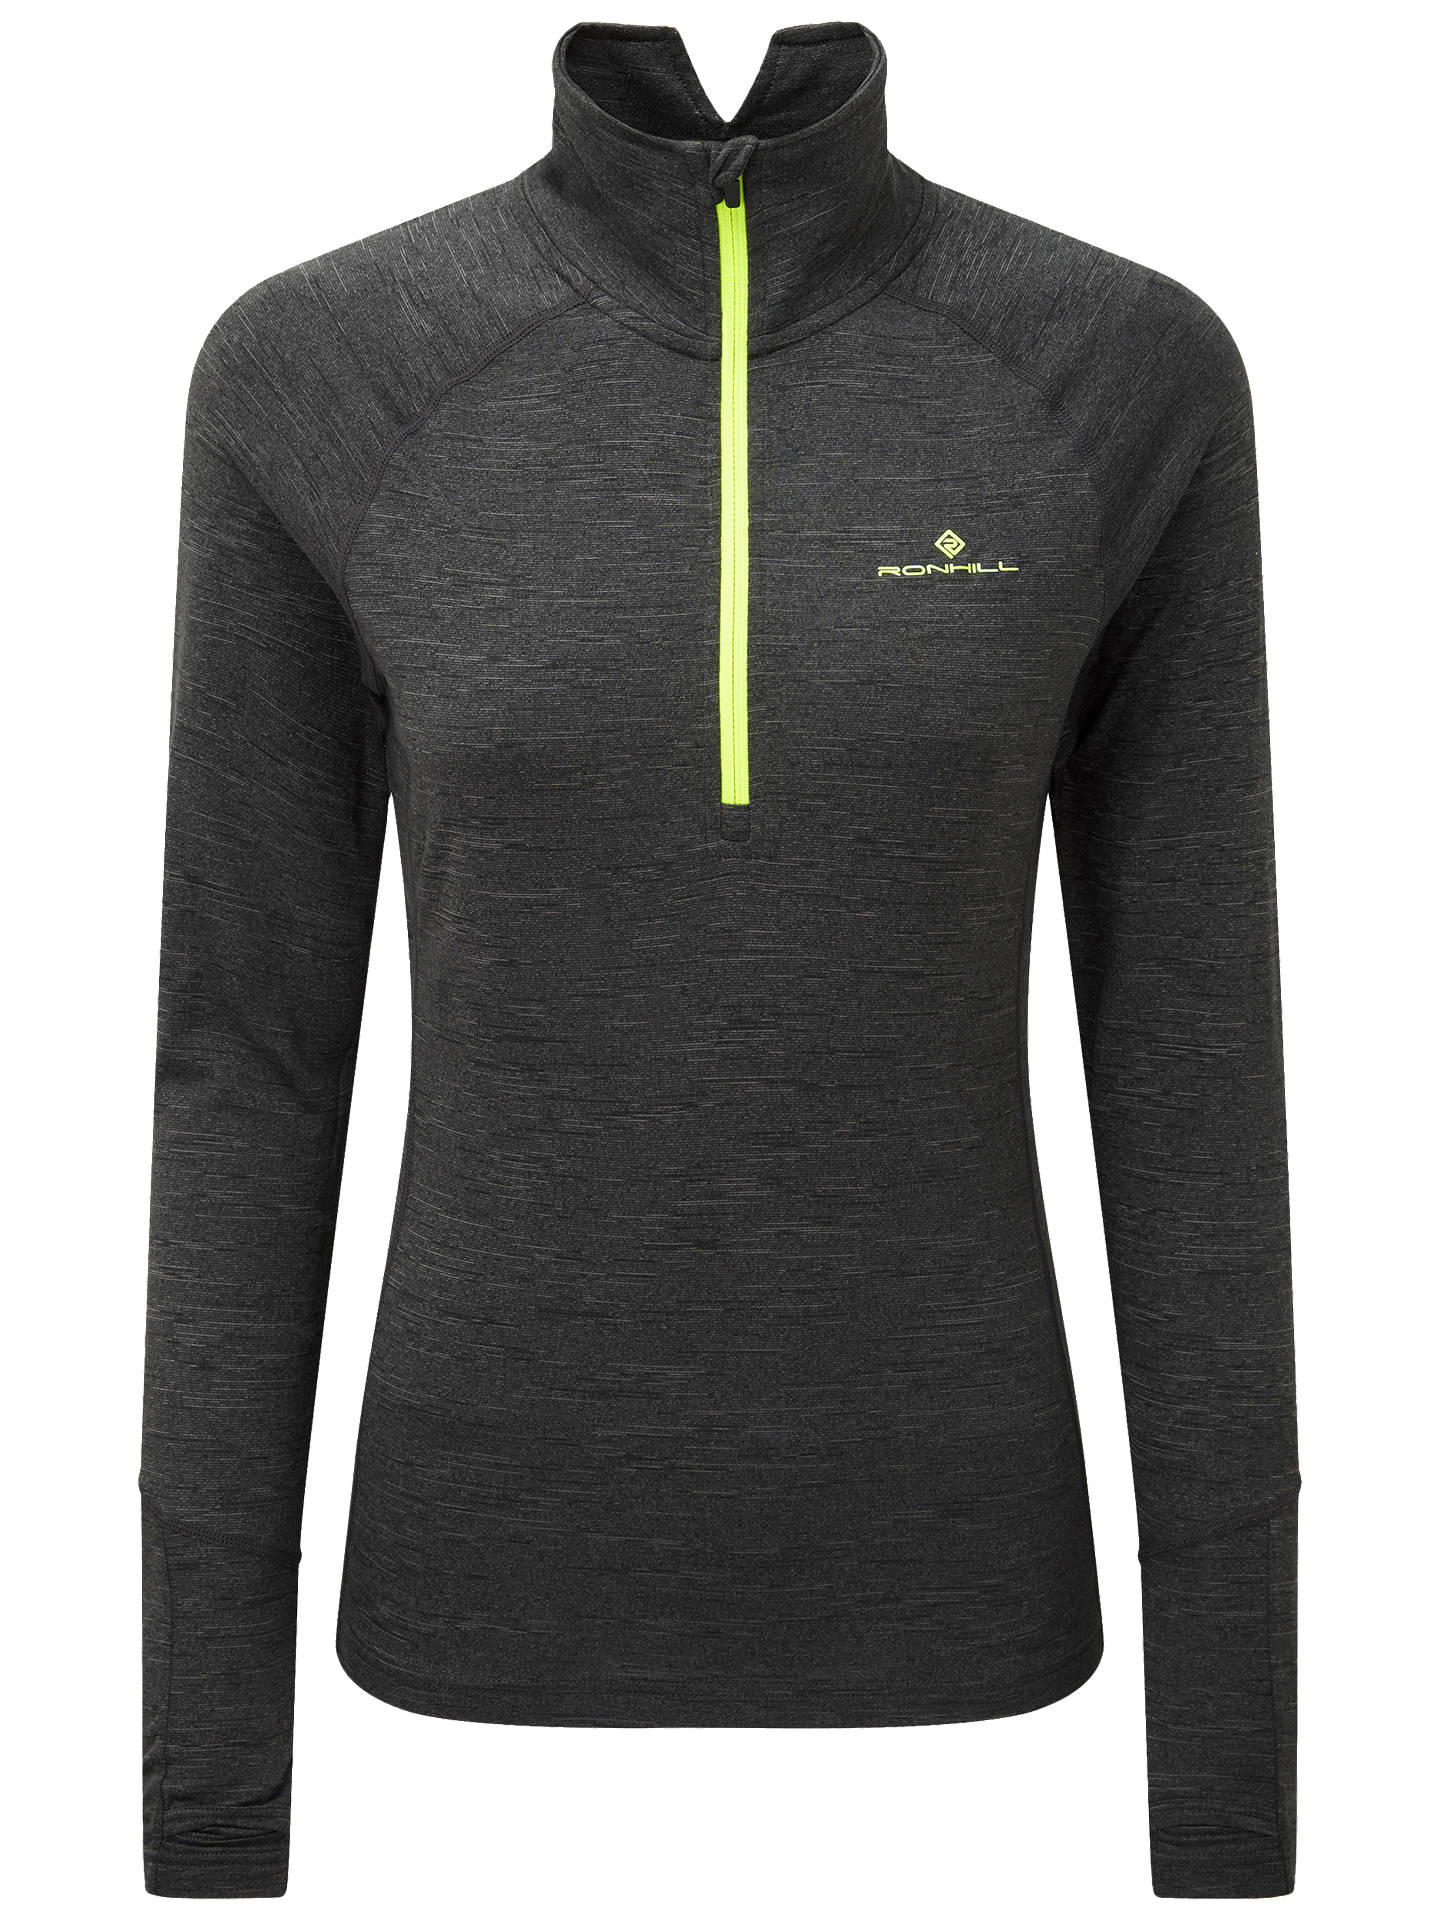 BuyRonhill Thermal Half-Zip Long Sleeve Running Top, Charcoal/Yellow, 16 Online at johnlewis.com